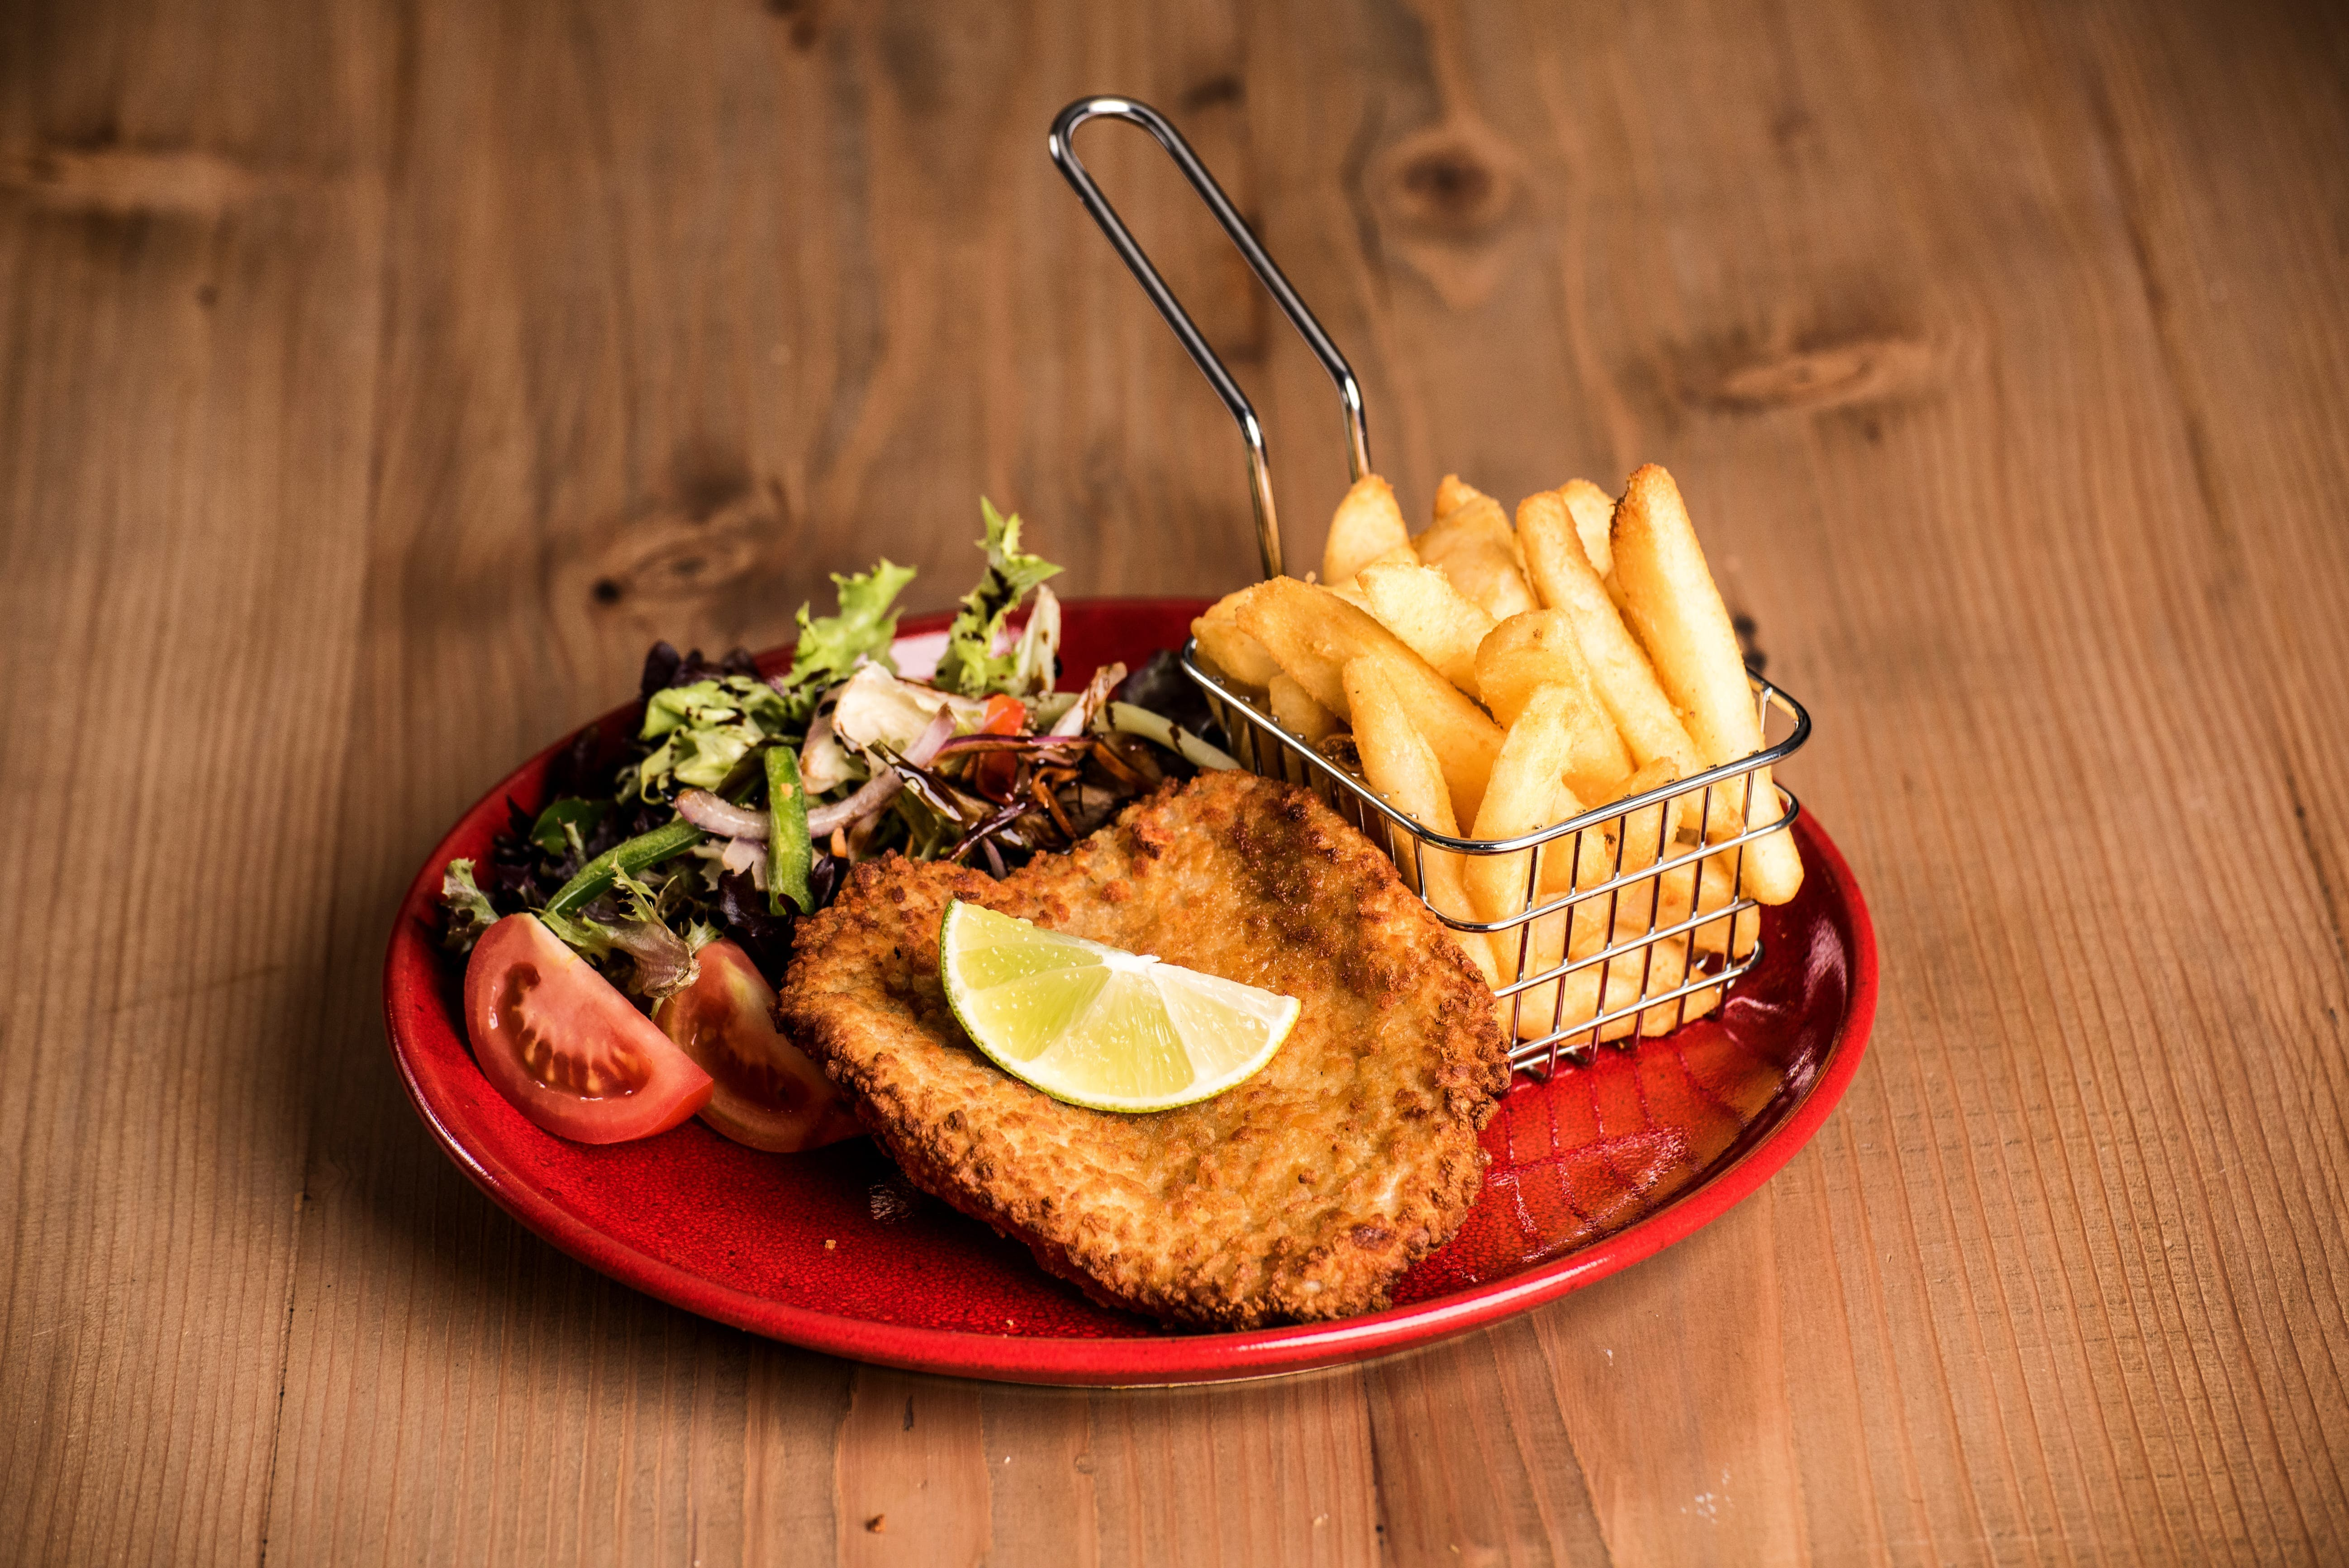 Chicken schnitzel, Leigh Creek Bar & Grill, Leigh Creek Outback Resort, Flinders Ranges accommodation